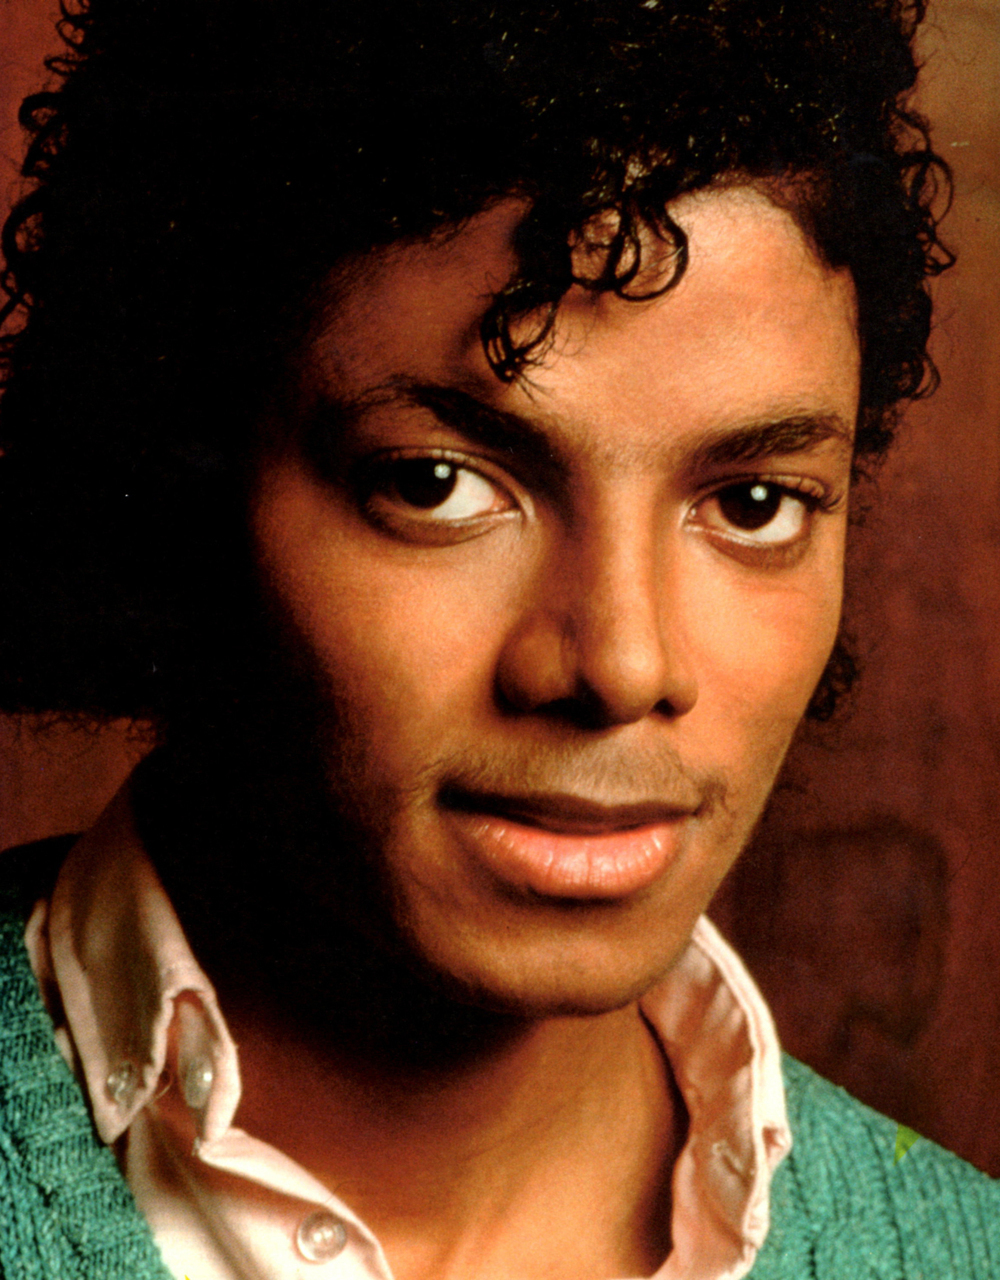 Michael Jackson!!!! - Michael Jackson Photo (19665848) - Fanpop